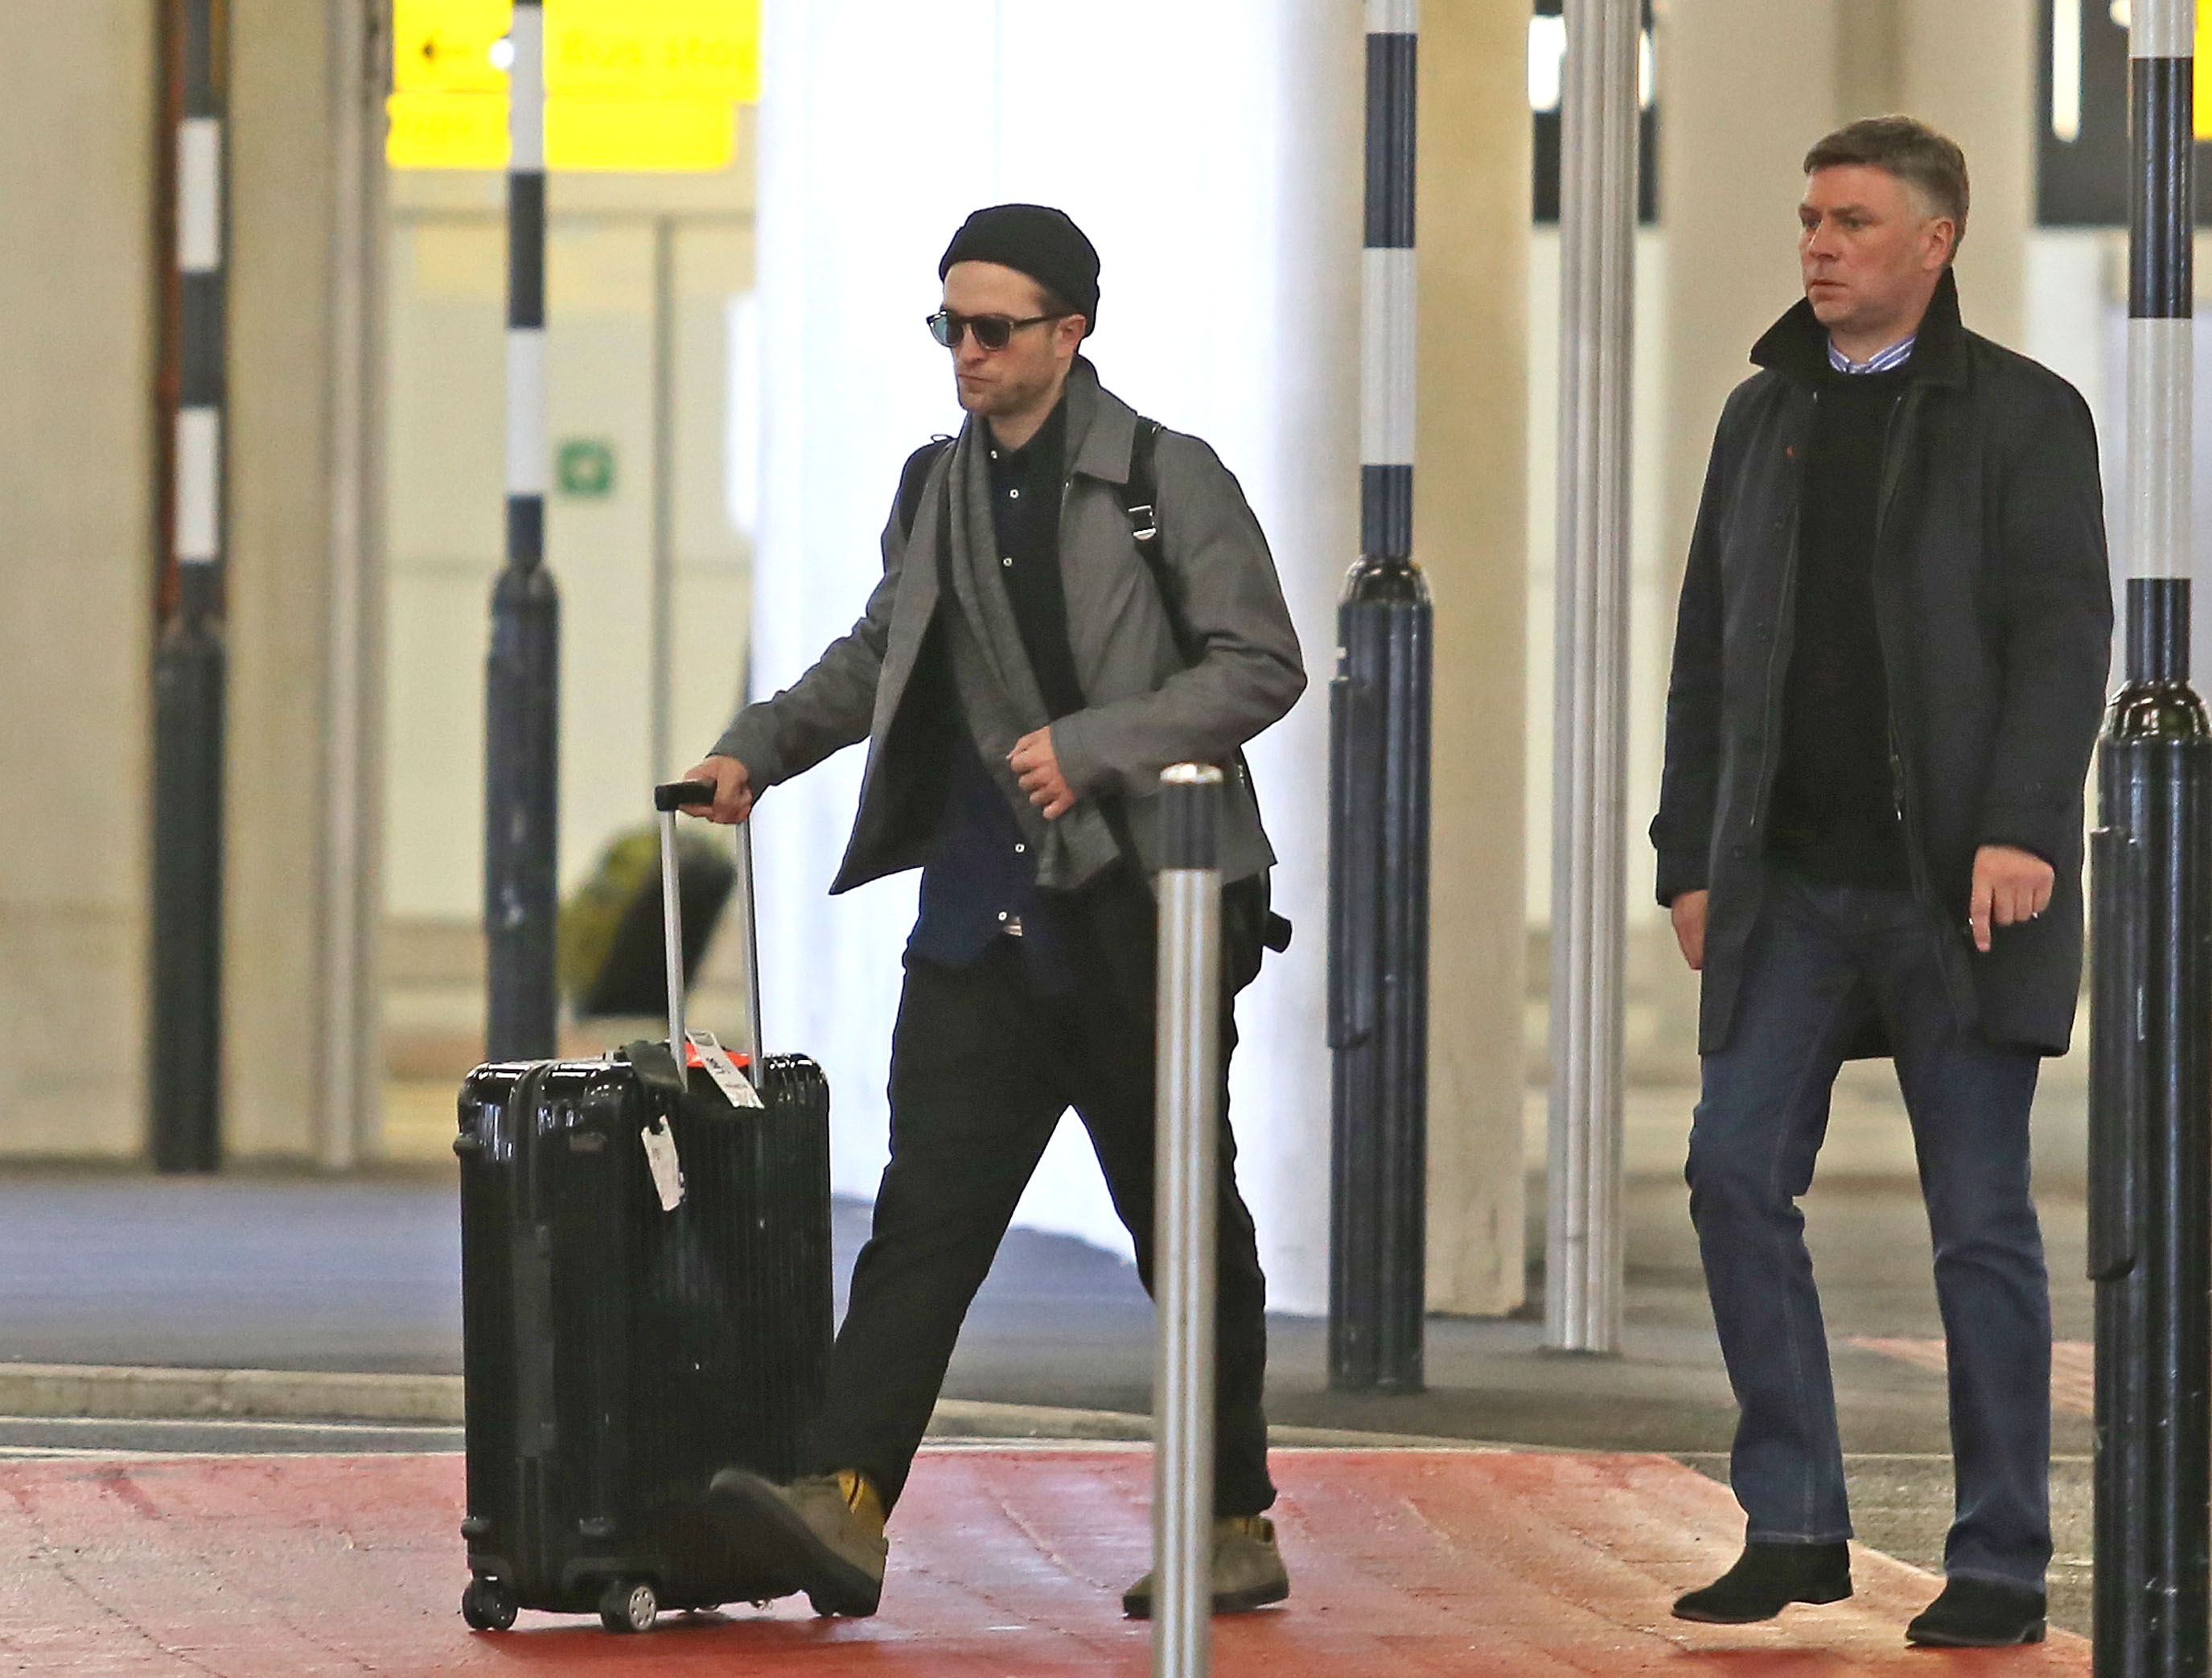 Fotos de Robert no aeroporto de Londres (25.02)